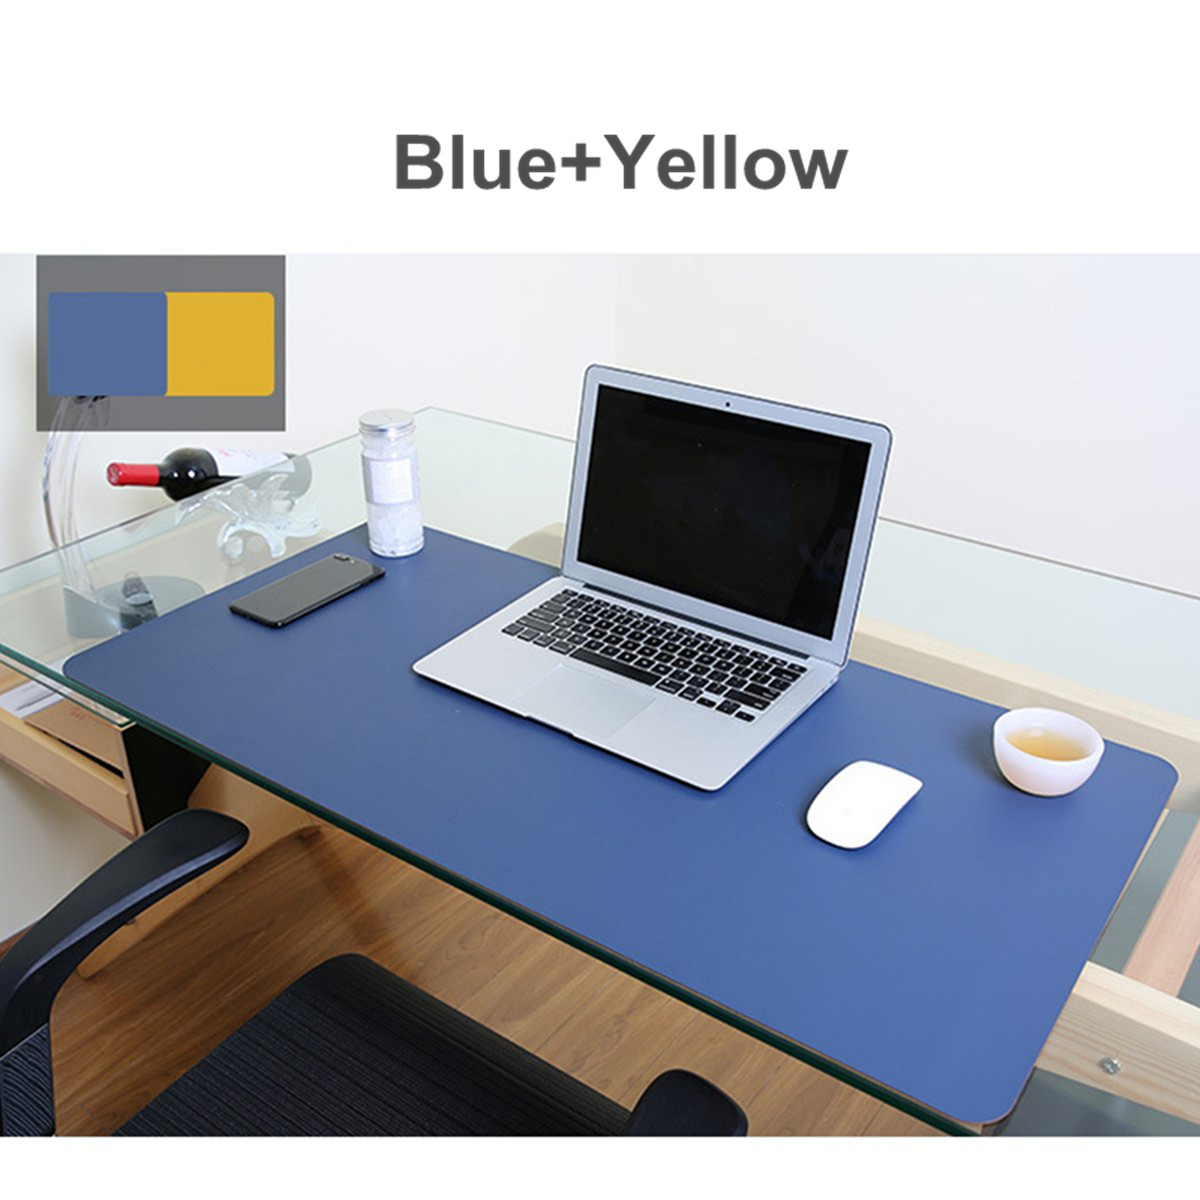 80x40cm both sides extended pu leather mouse pad office computer rh ebay com computer desk mat heavy computer desk mat heavy